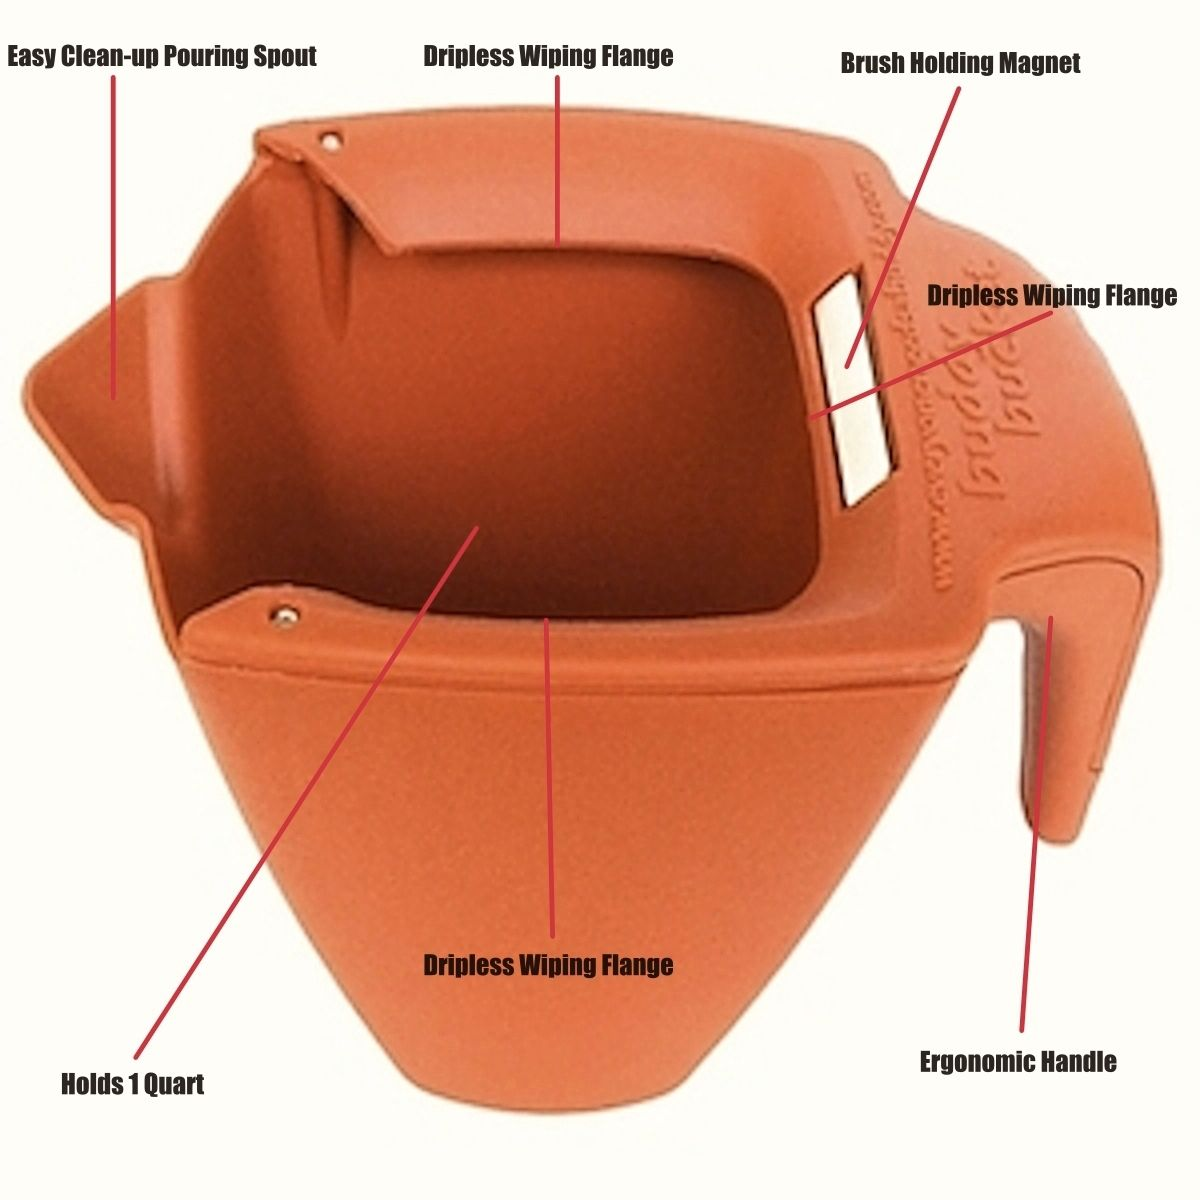 buddy bucket features include dripless wiping flange paint brush